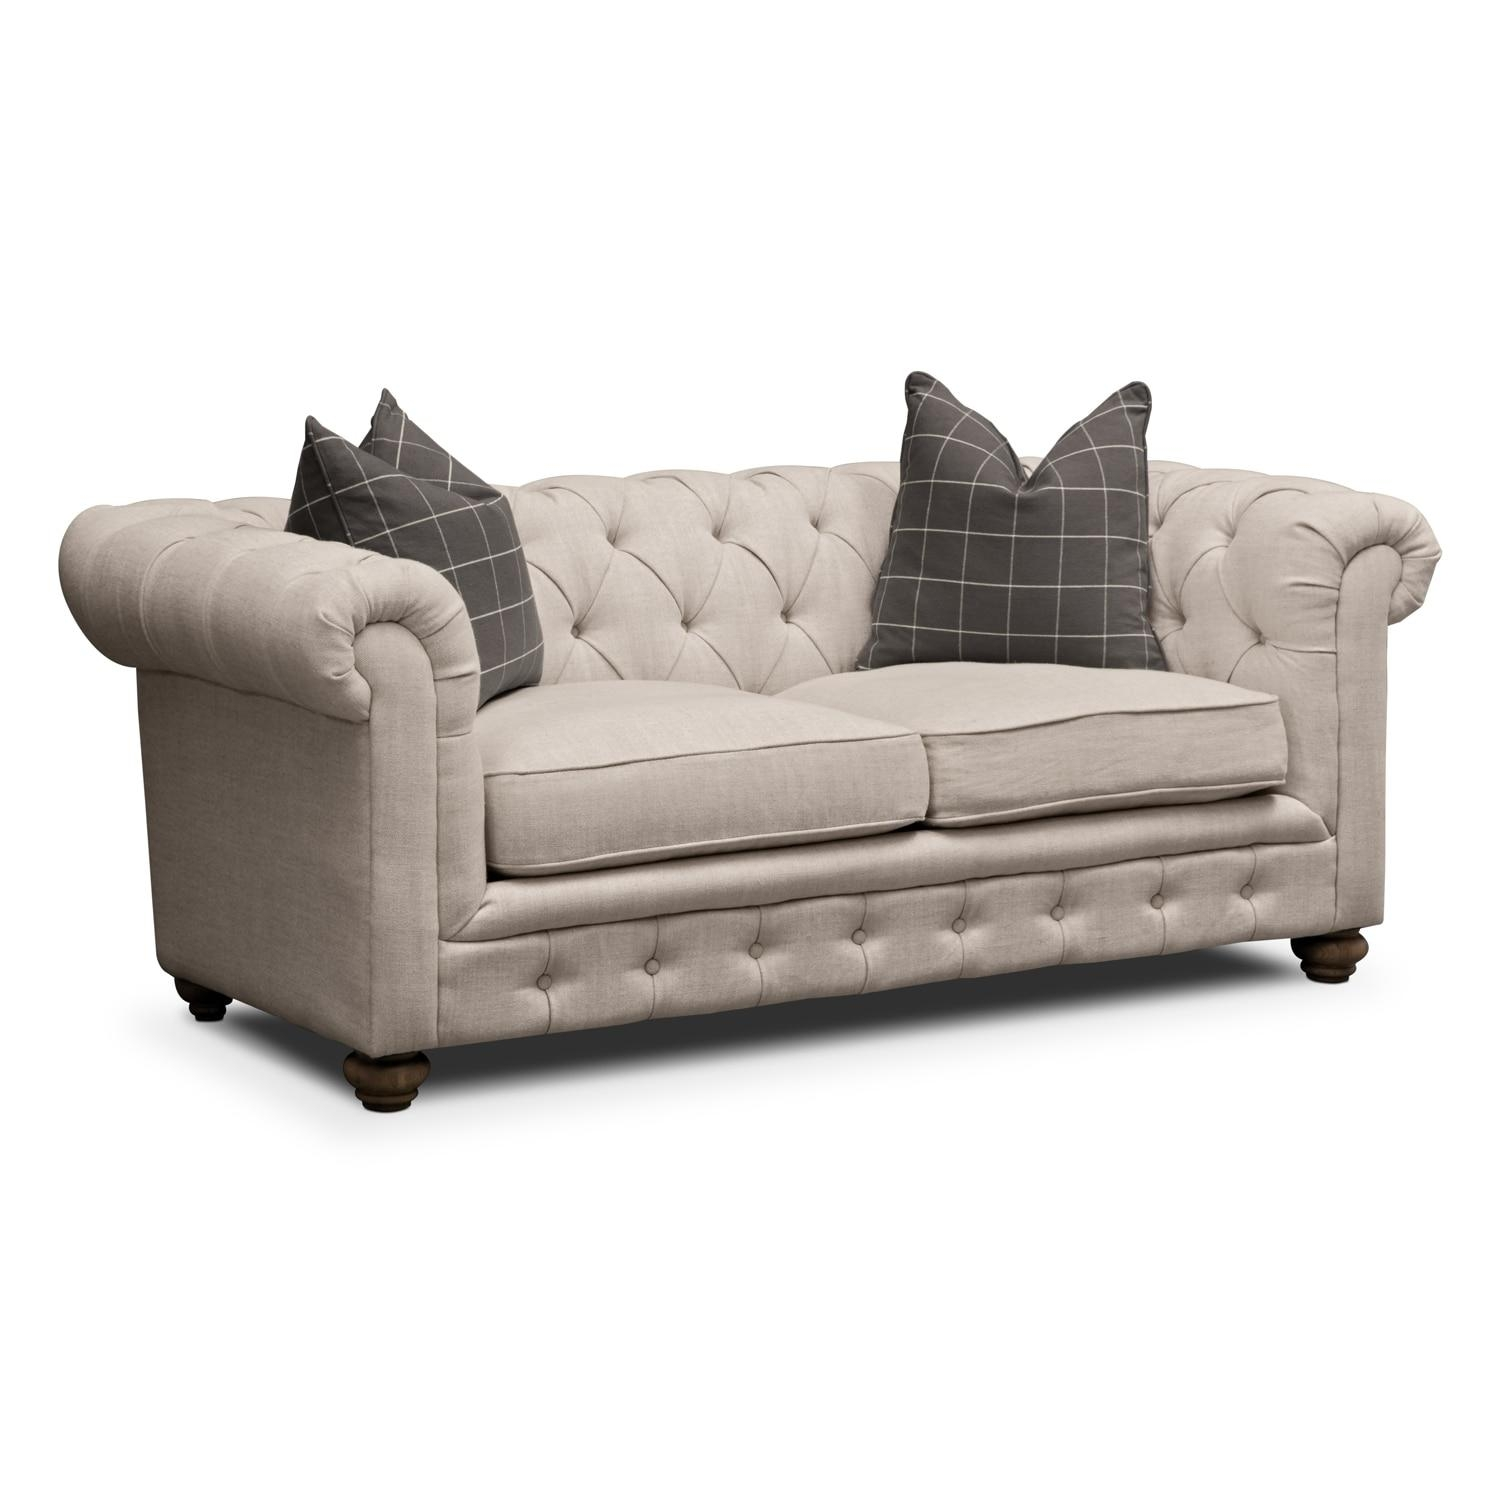 Madeline Sofa, Apartment Sofa And Accent Chair Set – Beige | Value For Sofa And Accent Chair Set (View 18 of 20)